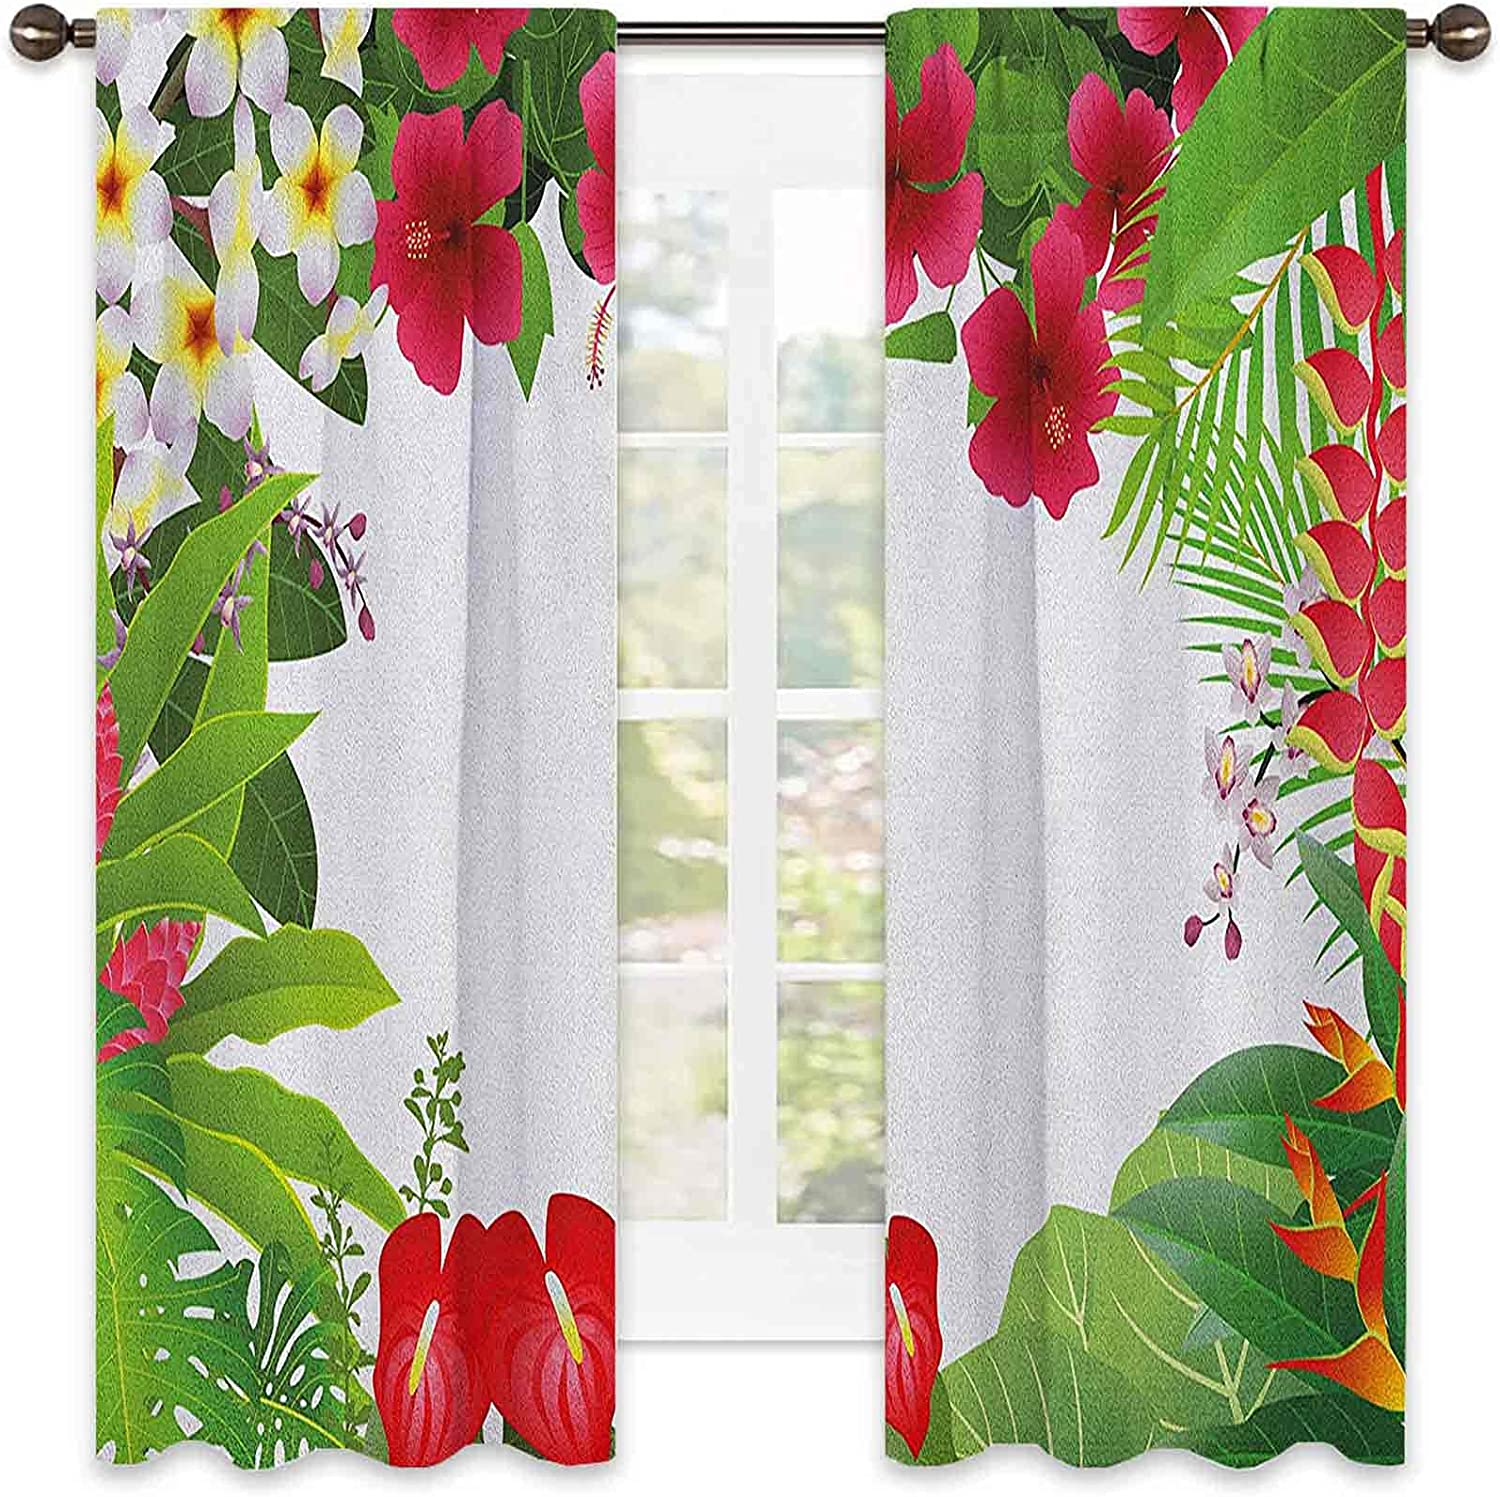 Leaf Wear Resistant Color Curtain Ranking Seattle Mall TOP9 Hibiscus Crepe Ginge Plumeria